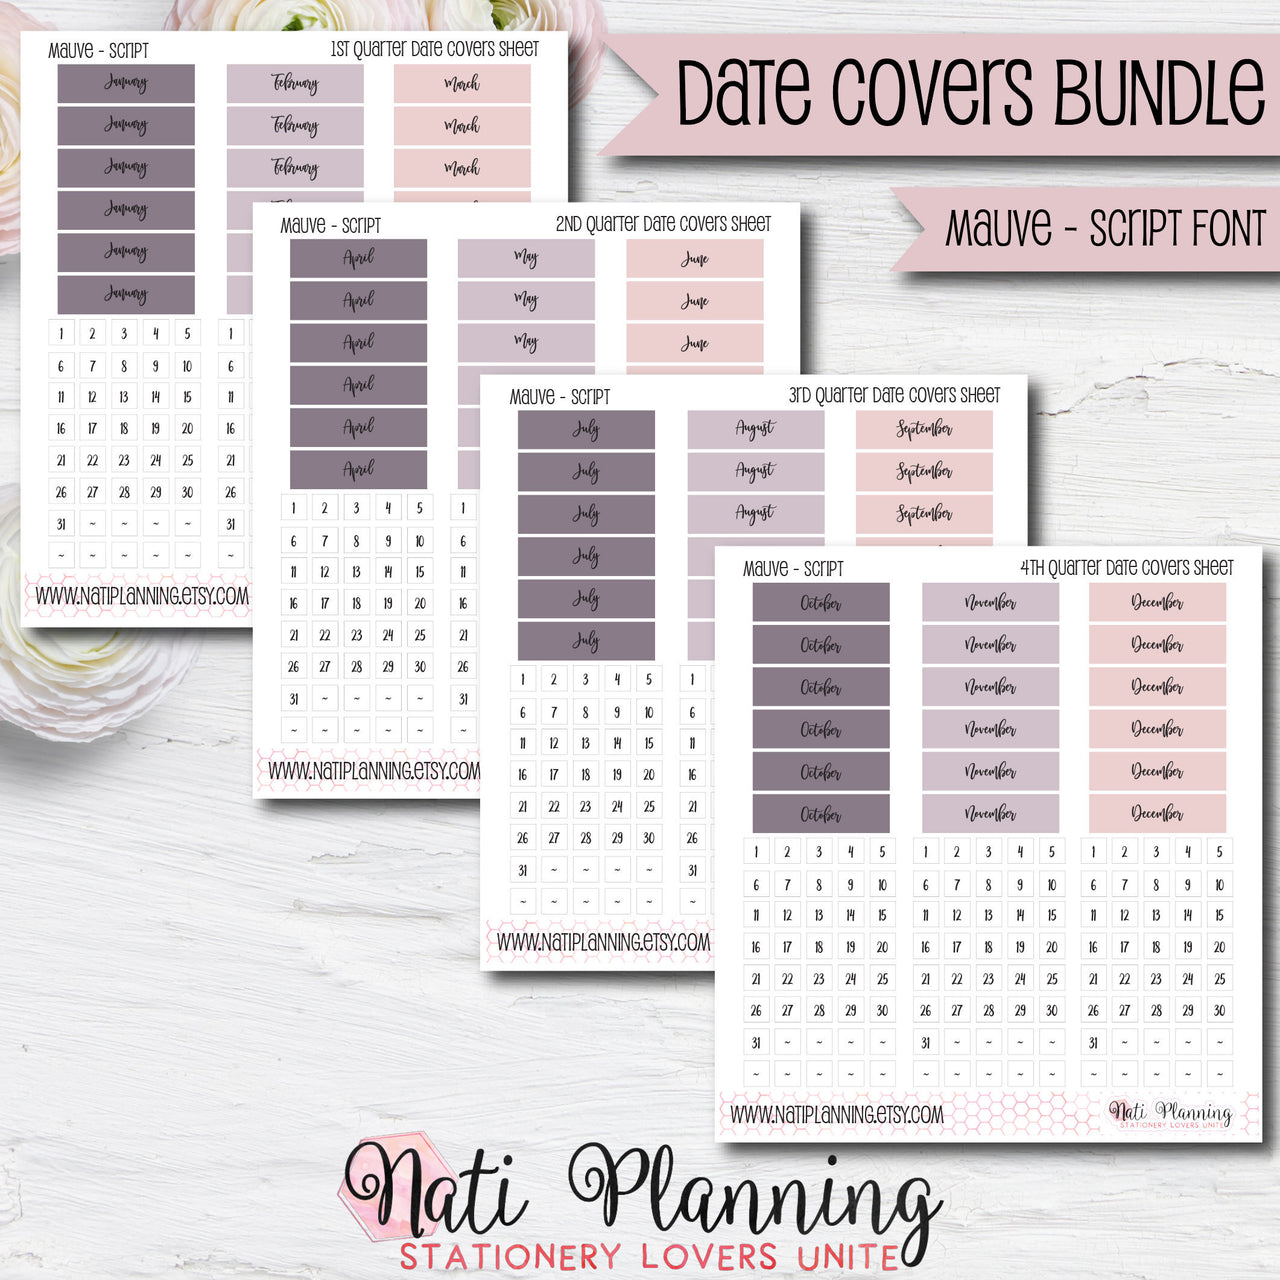 Date Cover Bundle - Mauve Script